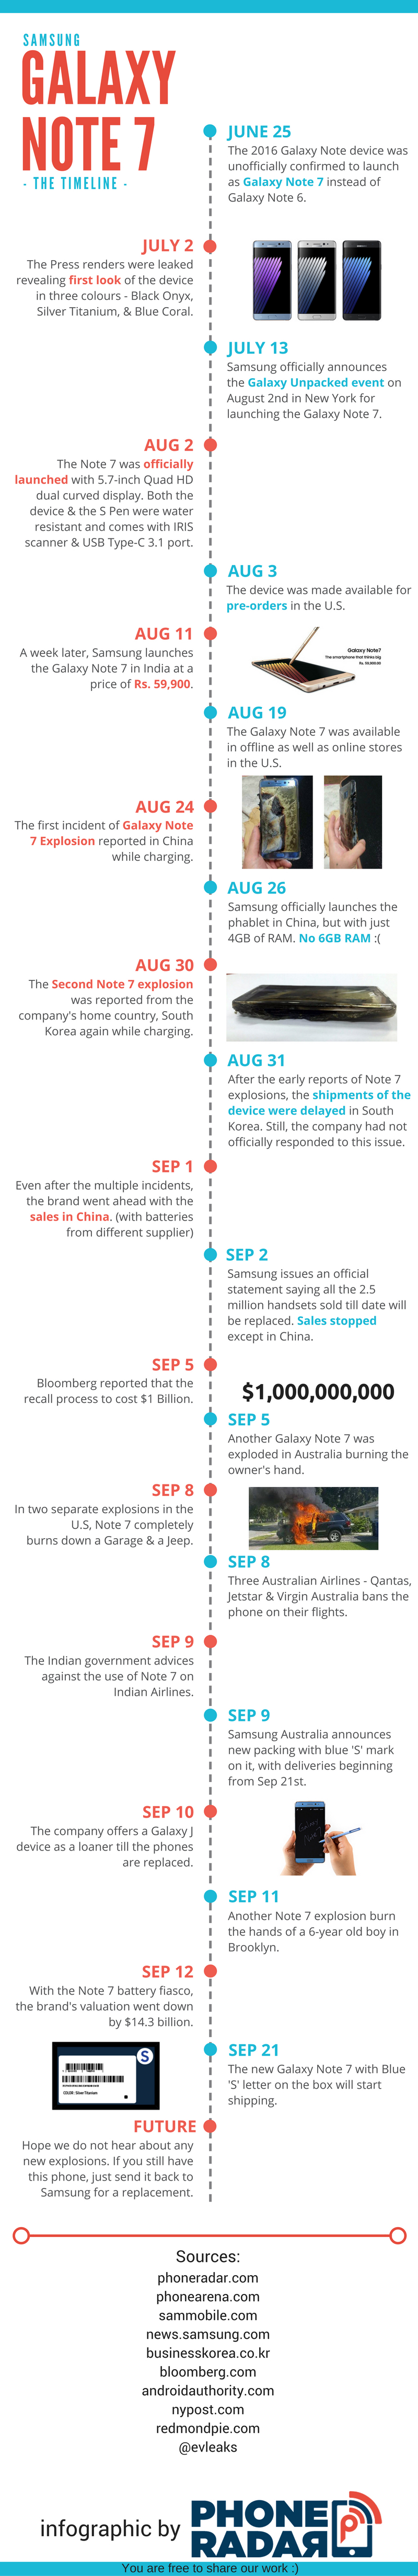 samsung-galaxy-note-7-infographic